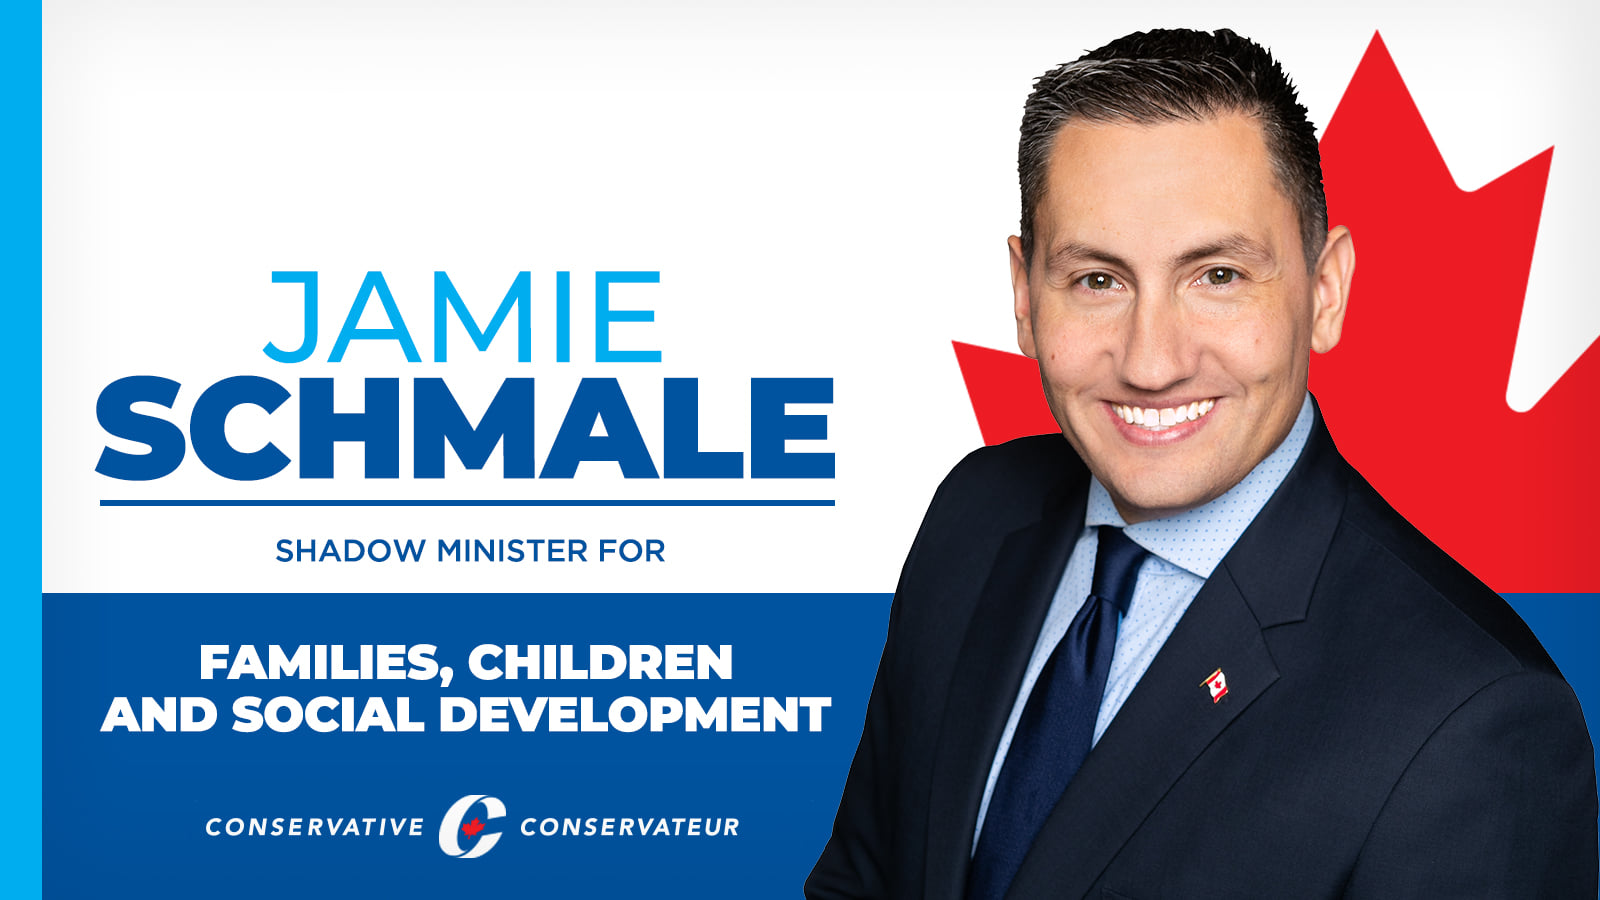 Area MP named to Conservative shadow cabinet